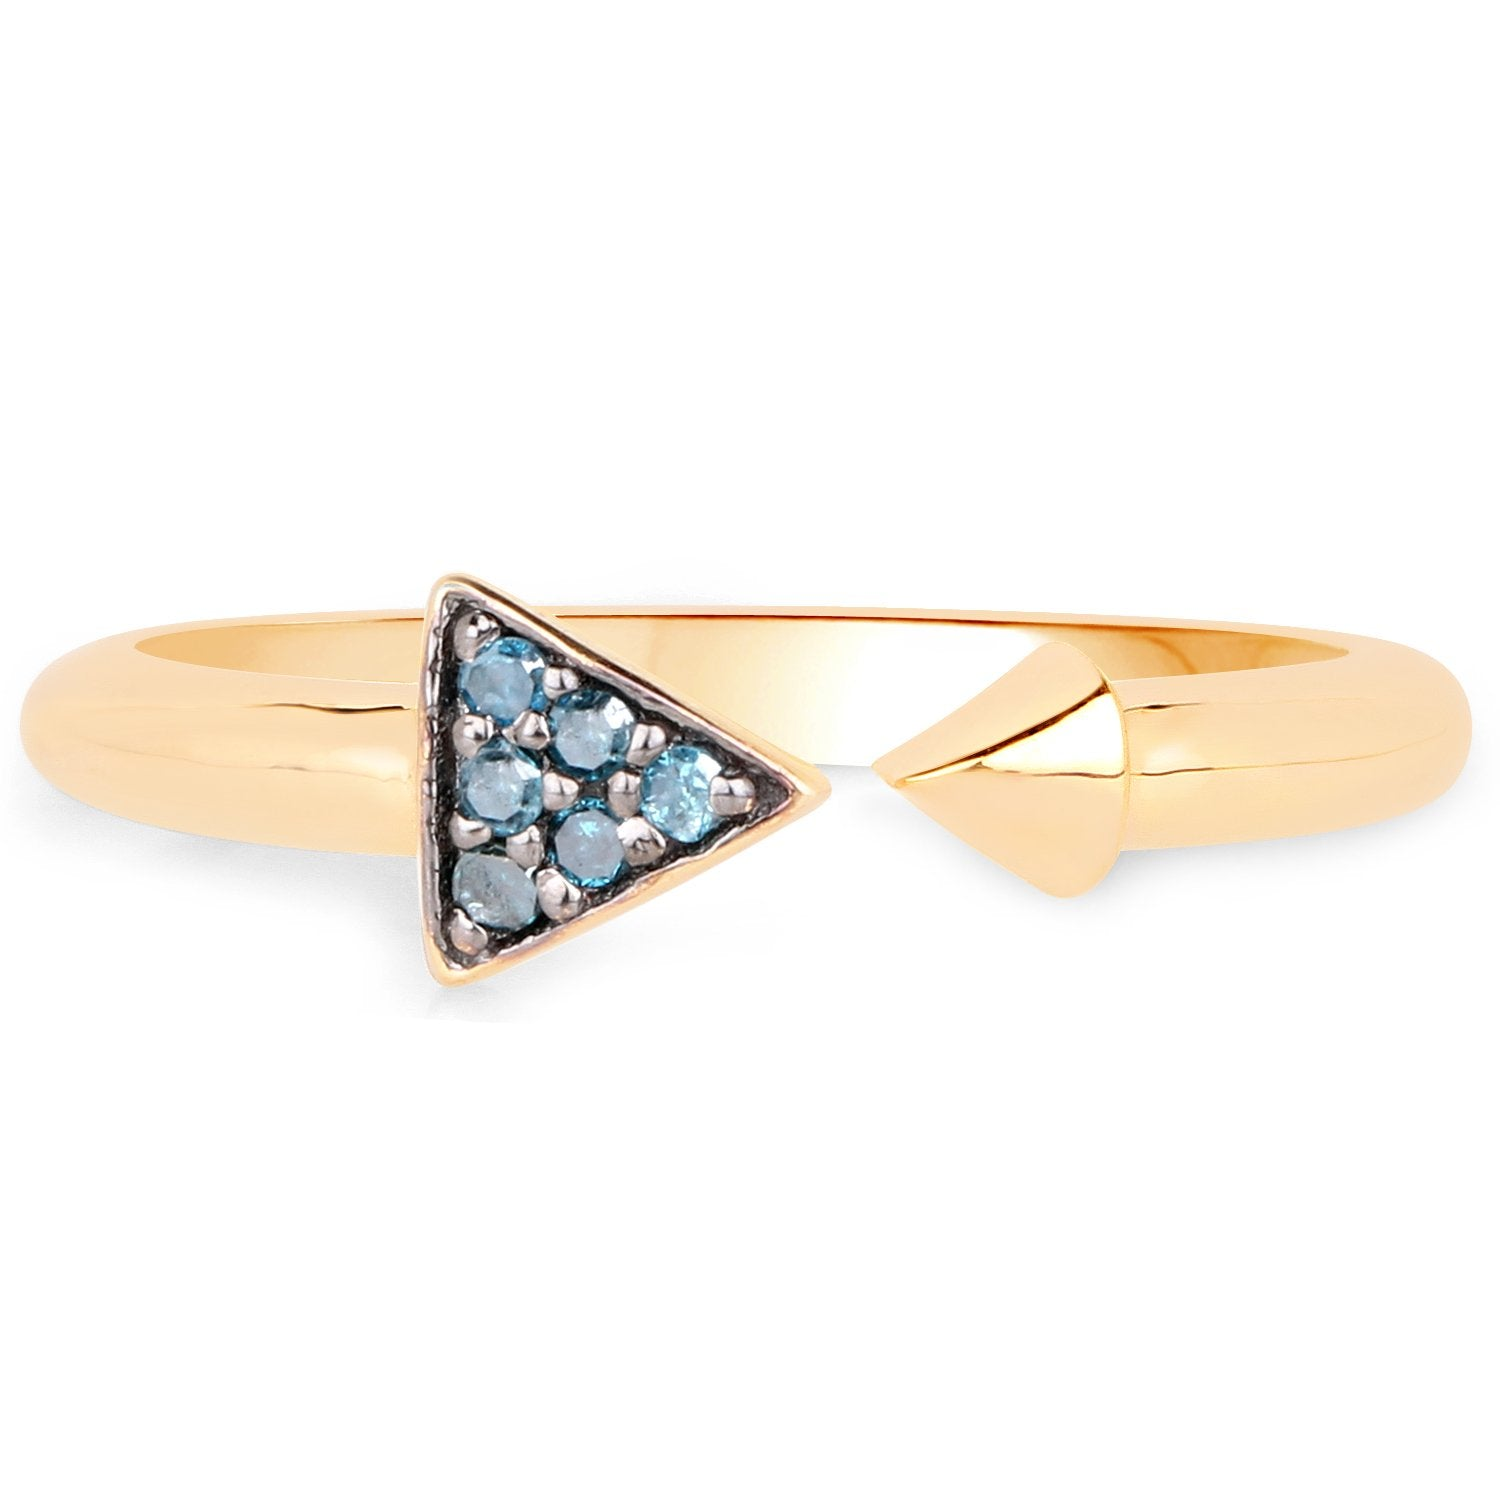 LoveHuang 0.04 Carats Genuine Blue Diamond (I-J, I2-I3) Arrow Ring Solid .925 Sterling Silver With 18KT Yellow Gold Plating